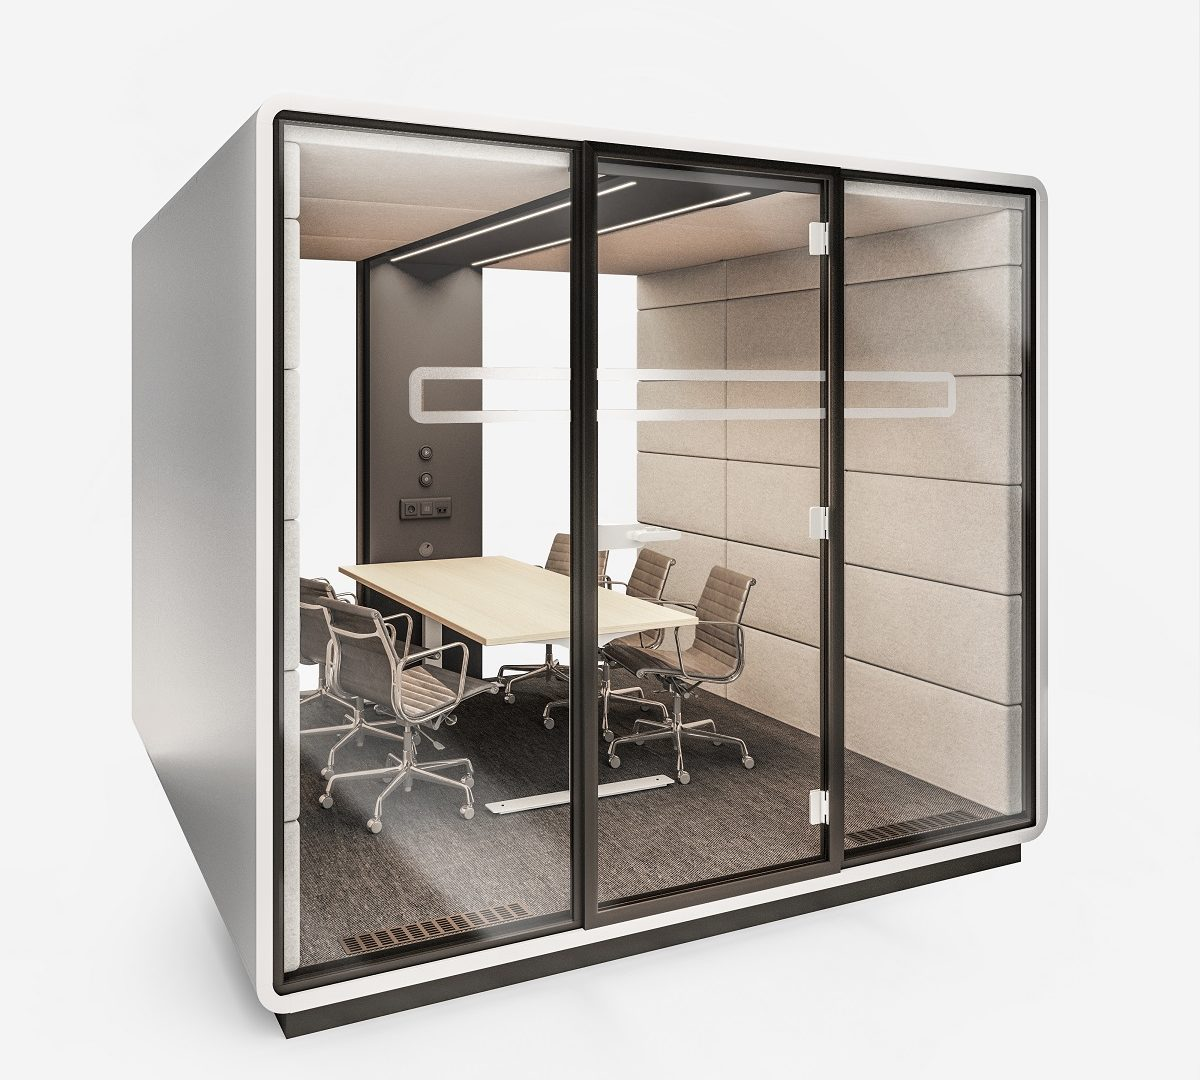 HushMeet.L modular office pod. Coated with an anti-virus solution that kills over 80% of surface viruses, bacteria, and fungi. Safely collaborate in the open office.